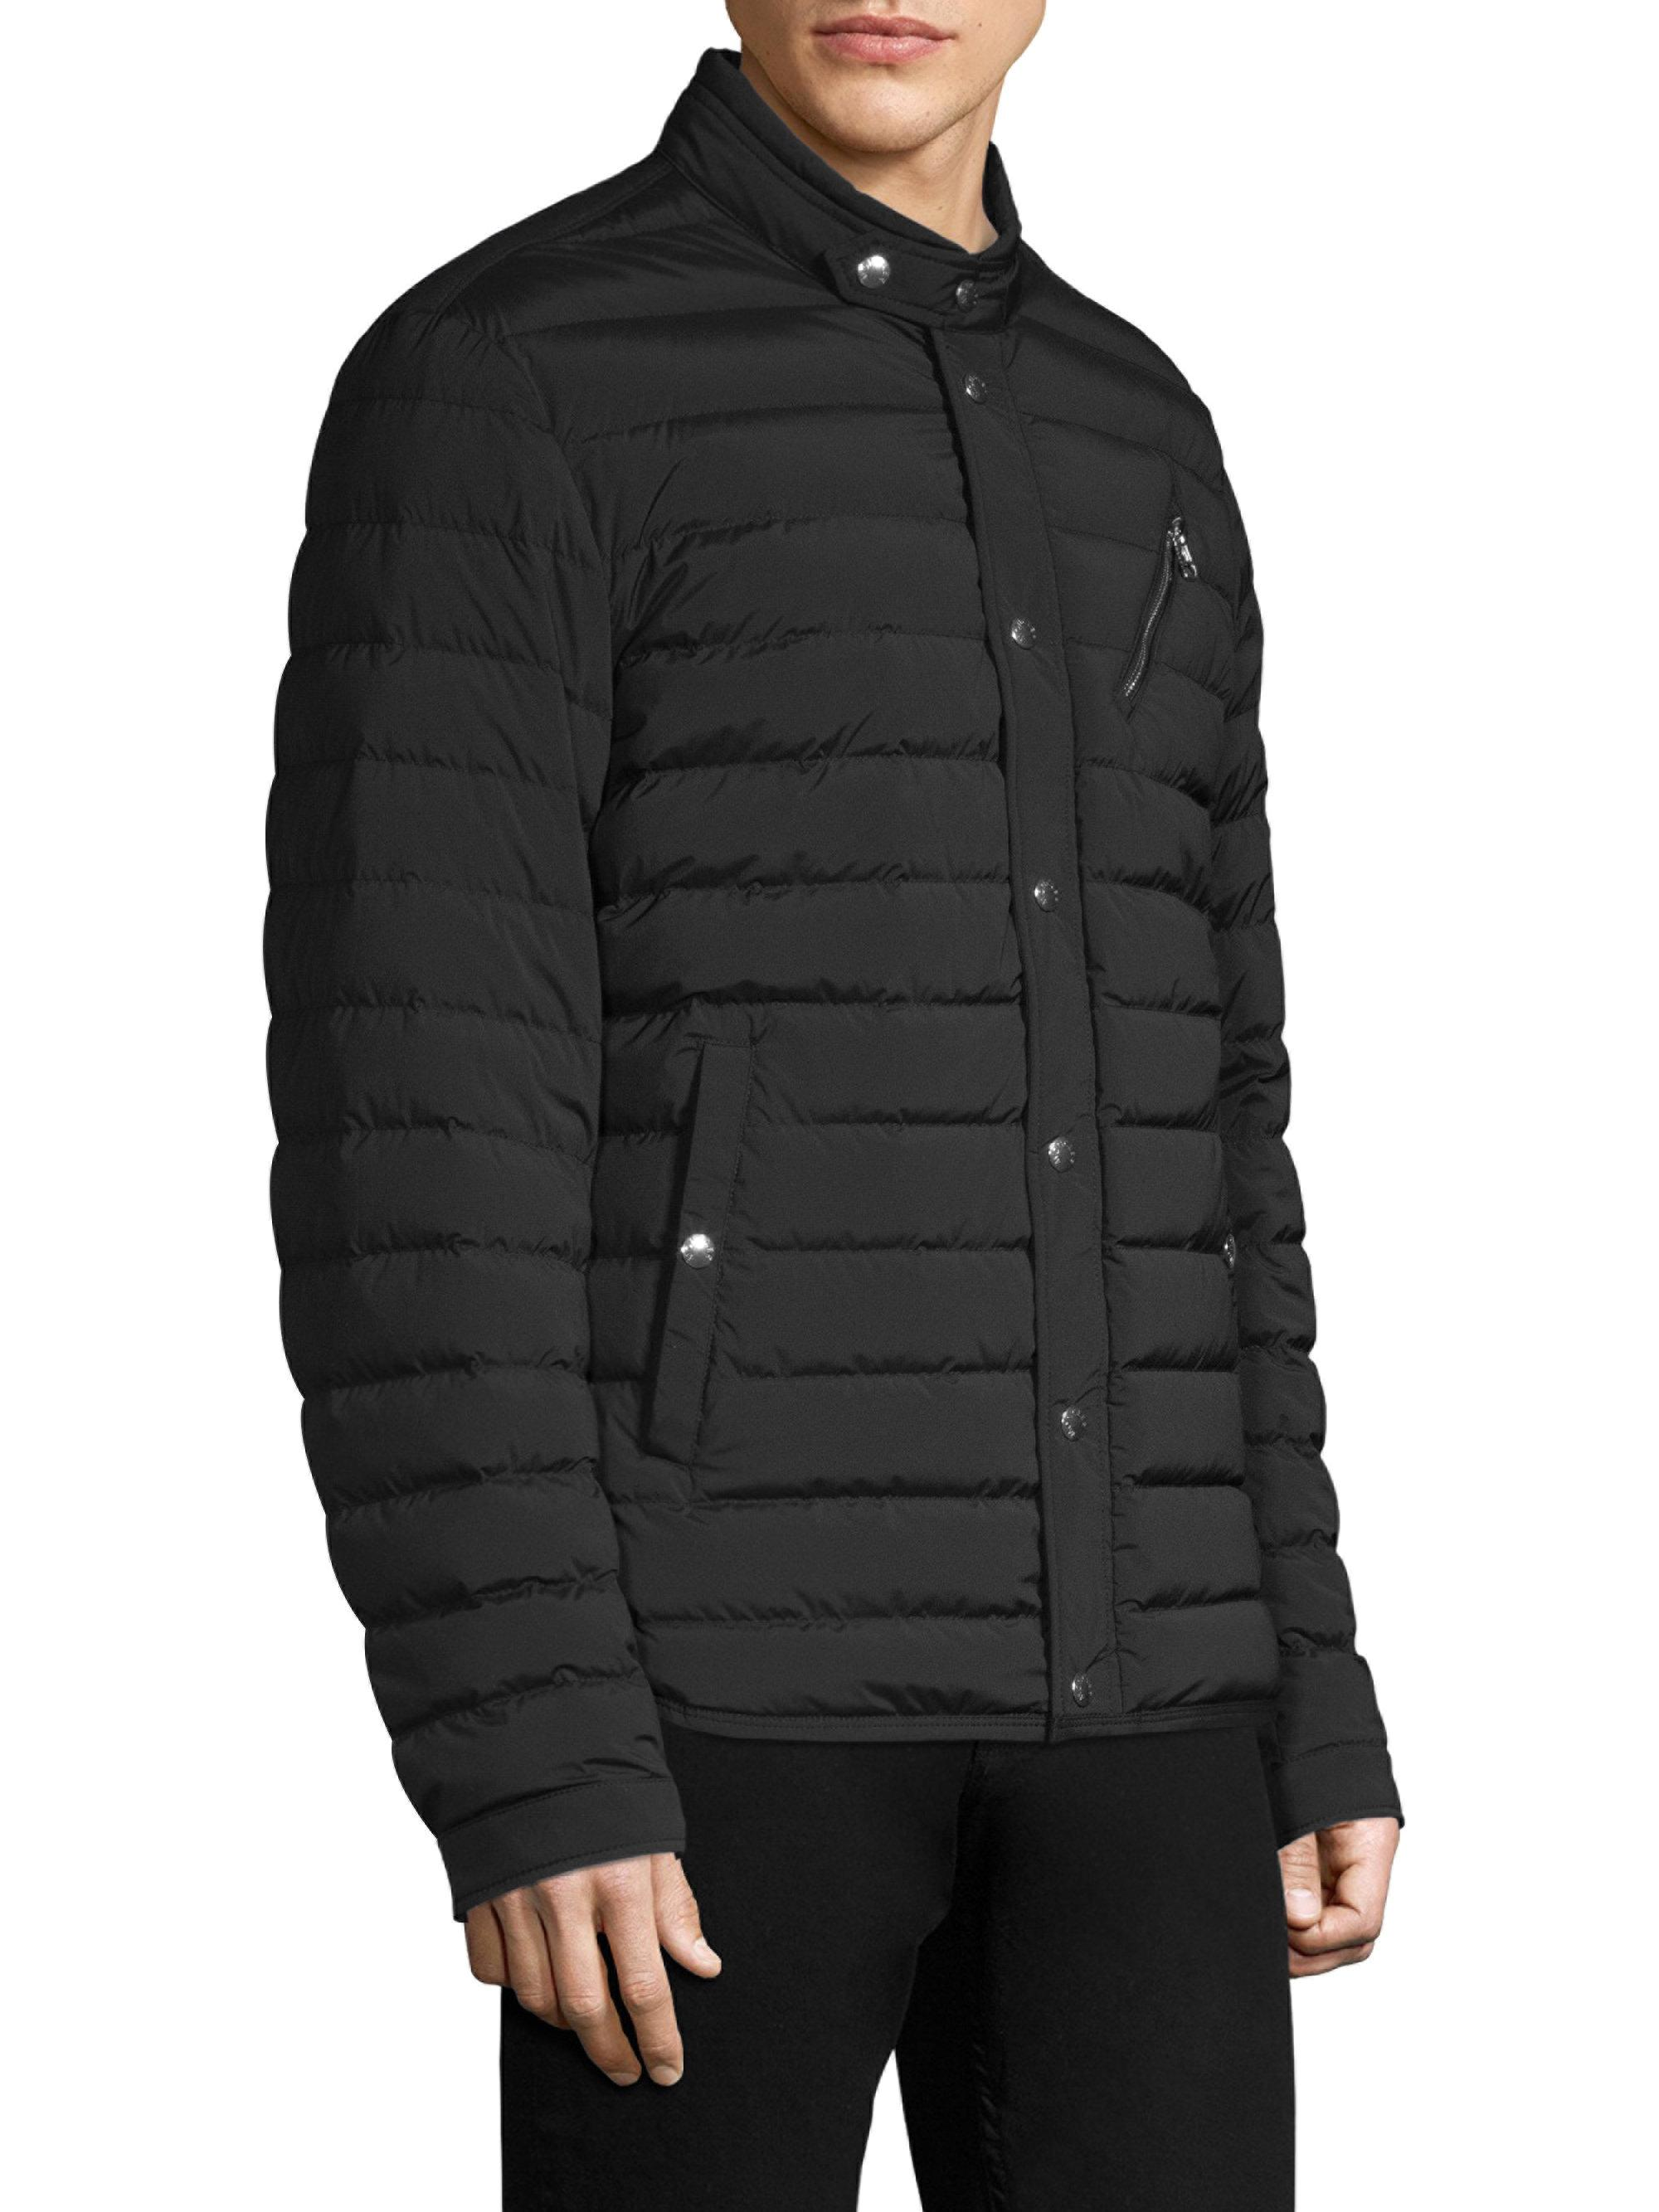 93f336a66 Moncler Nestor Quilted Snapped Jacket in Black for Men - Lyst